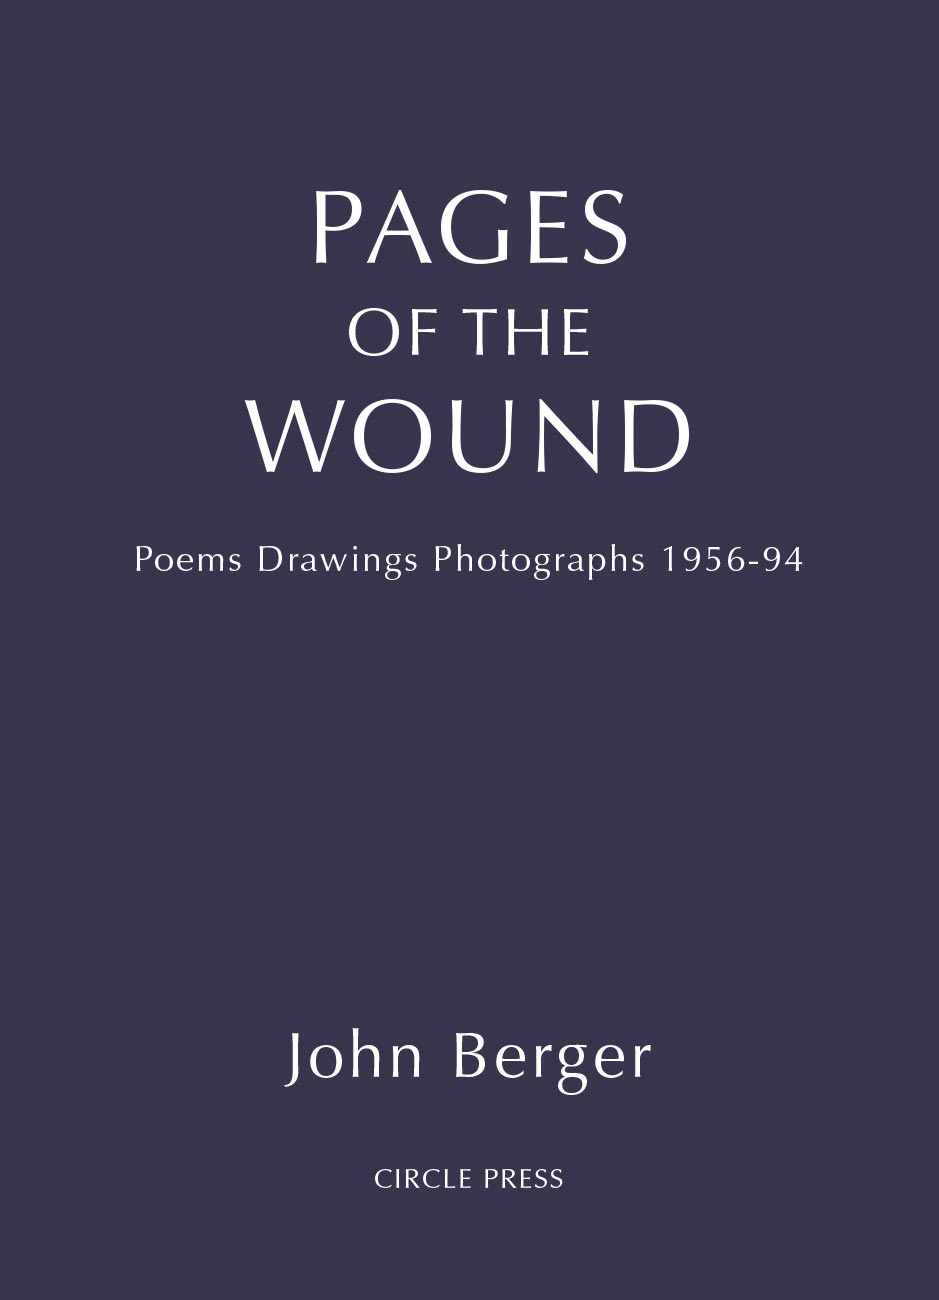 Pages of the Wound